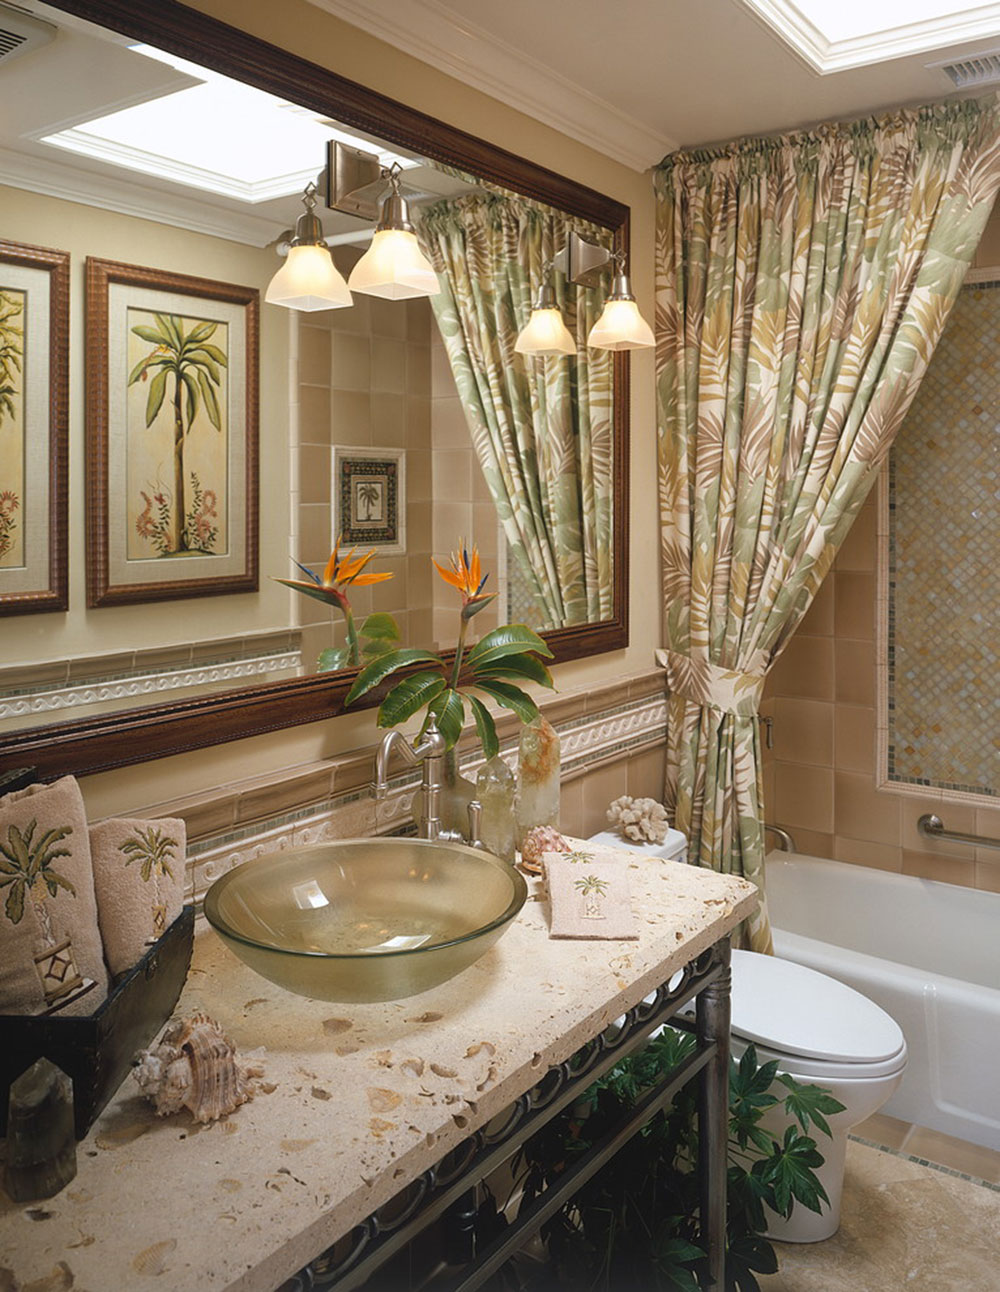 Enhance your bathroom look with trendy shower curtains8 trendy shower curtains for your bathroom